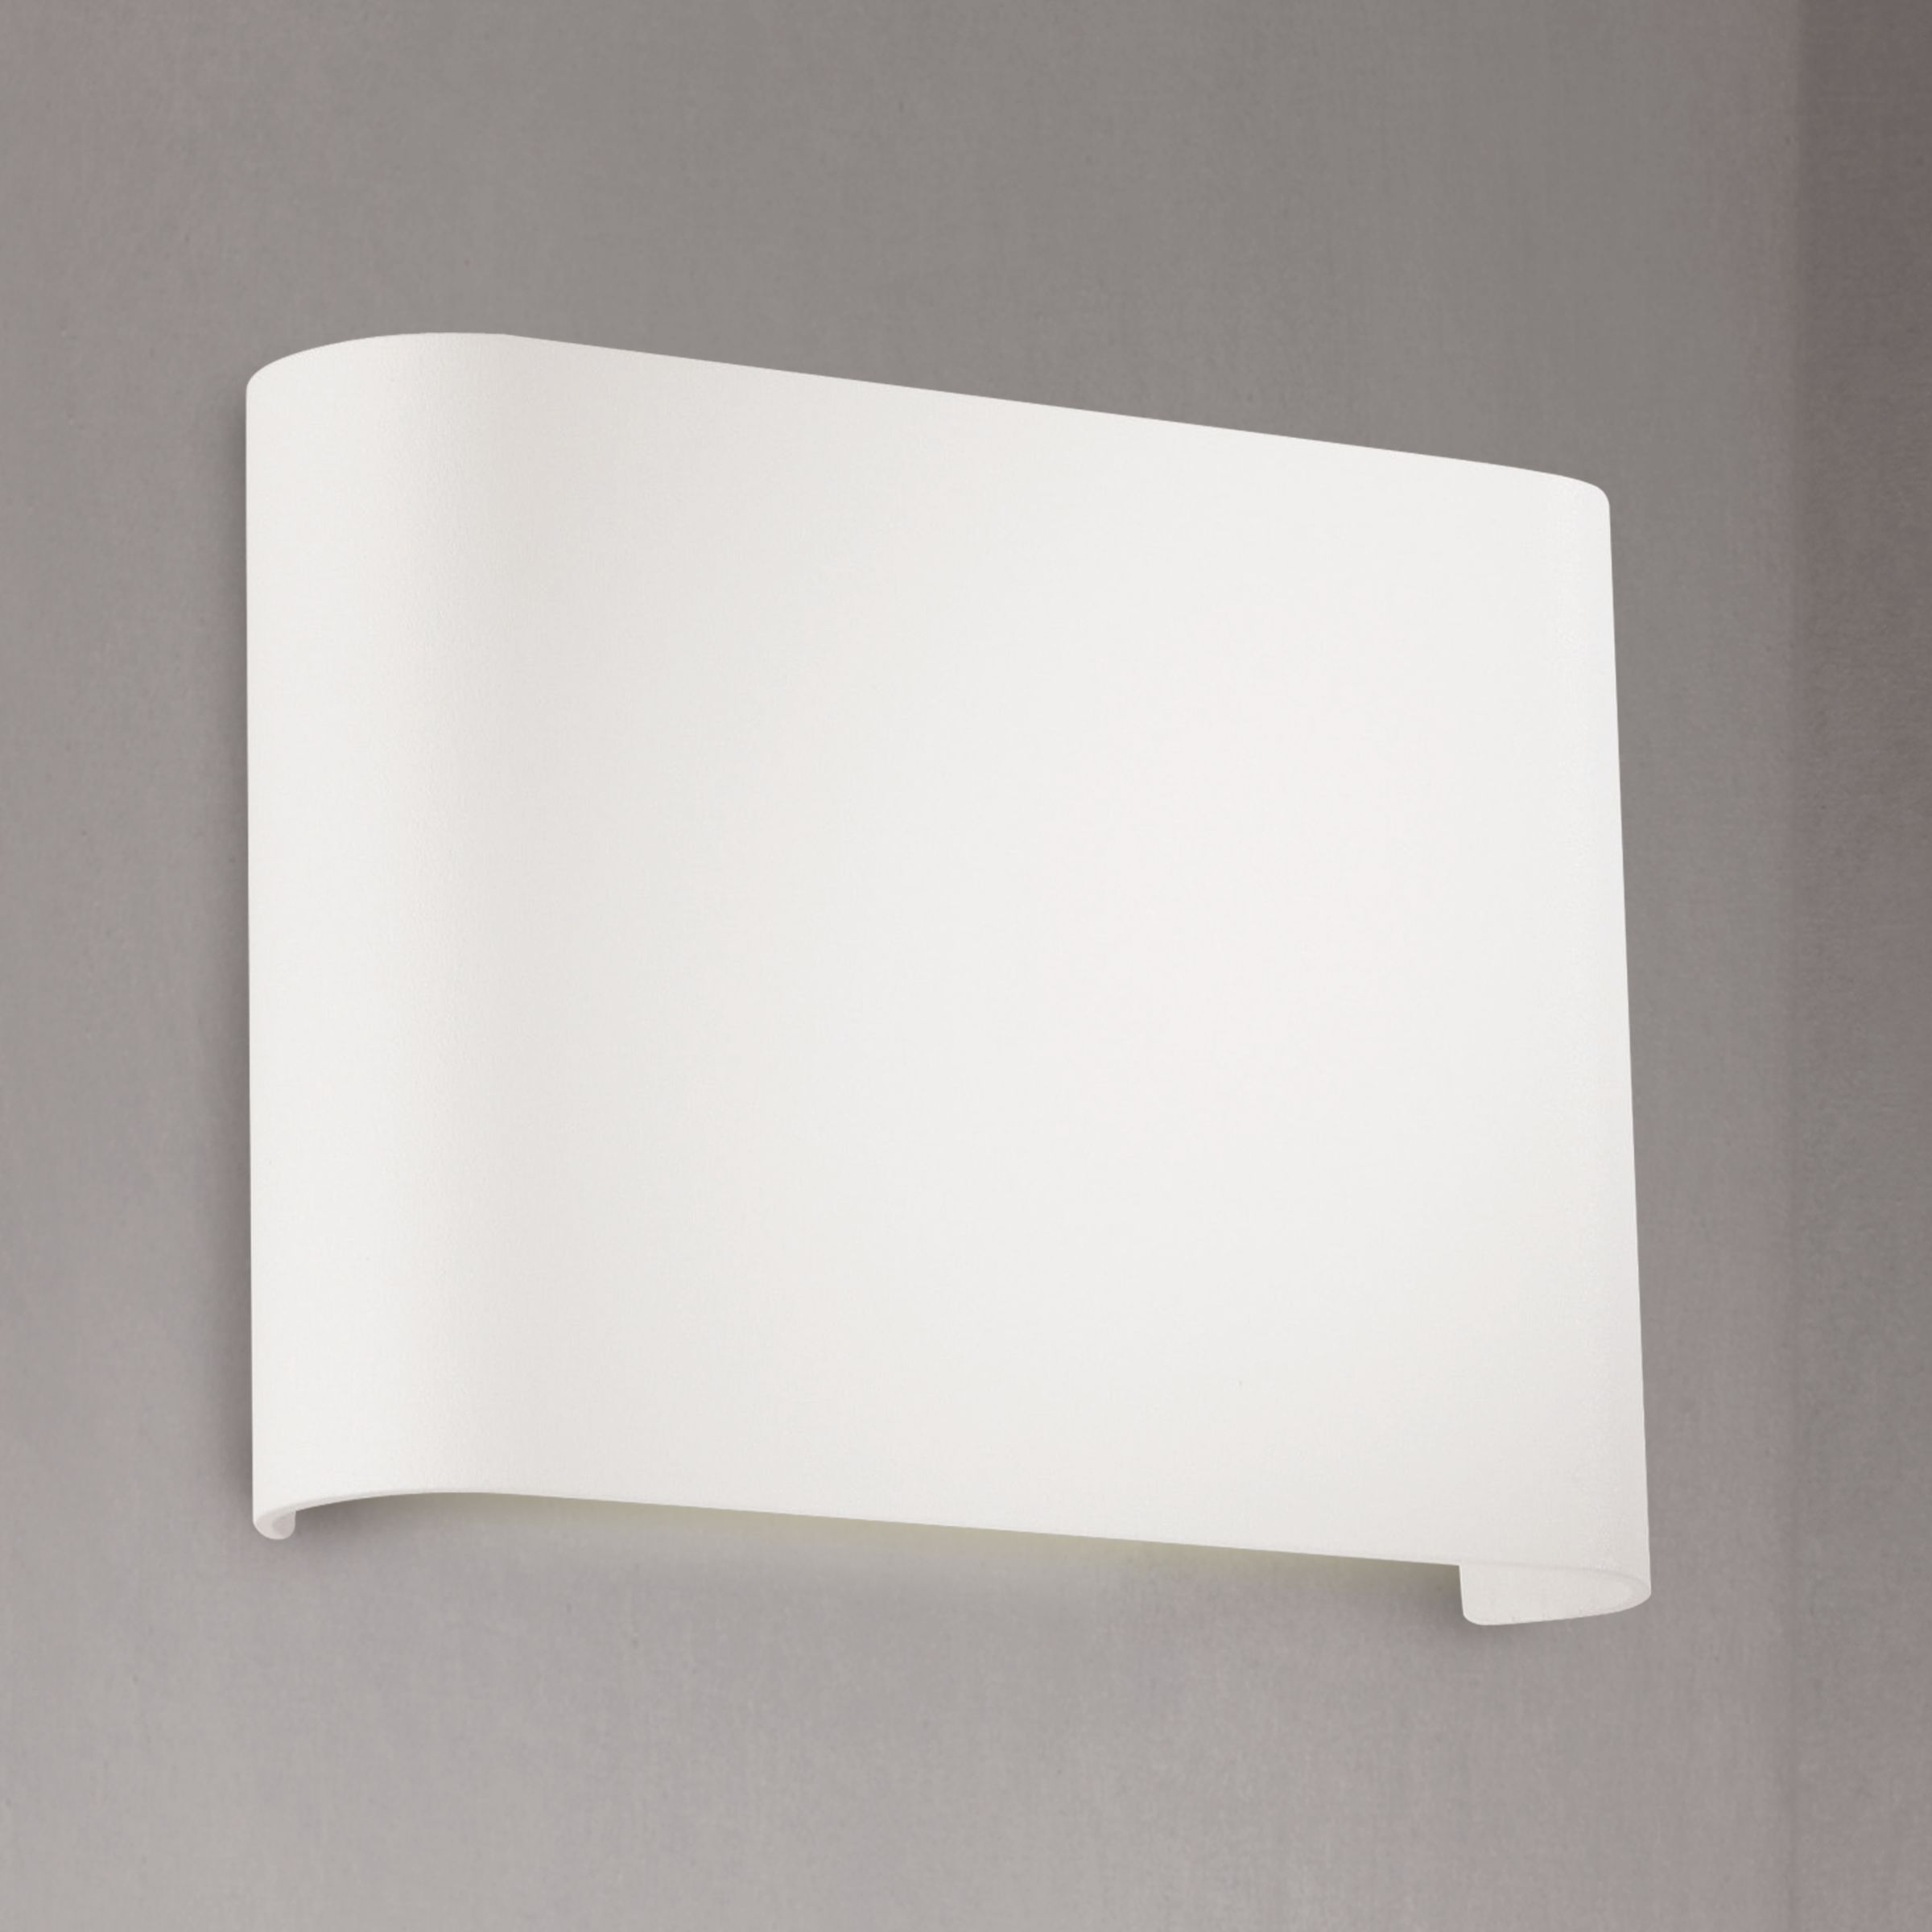 Buy Philips Ledino Galax LED Wall Light, White John Lewis